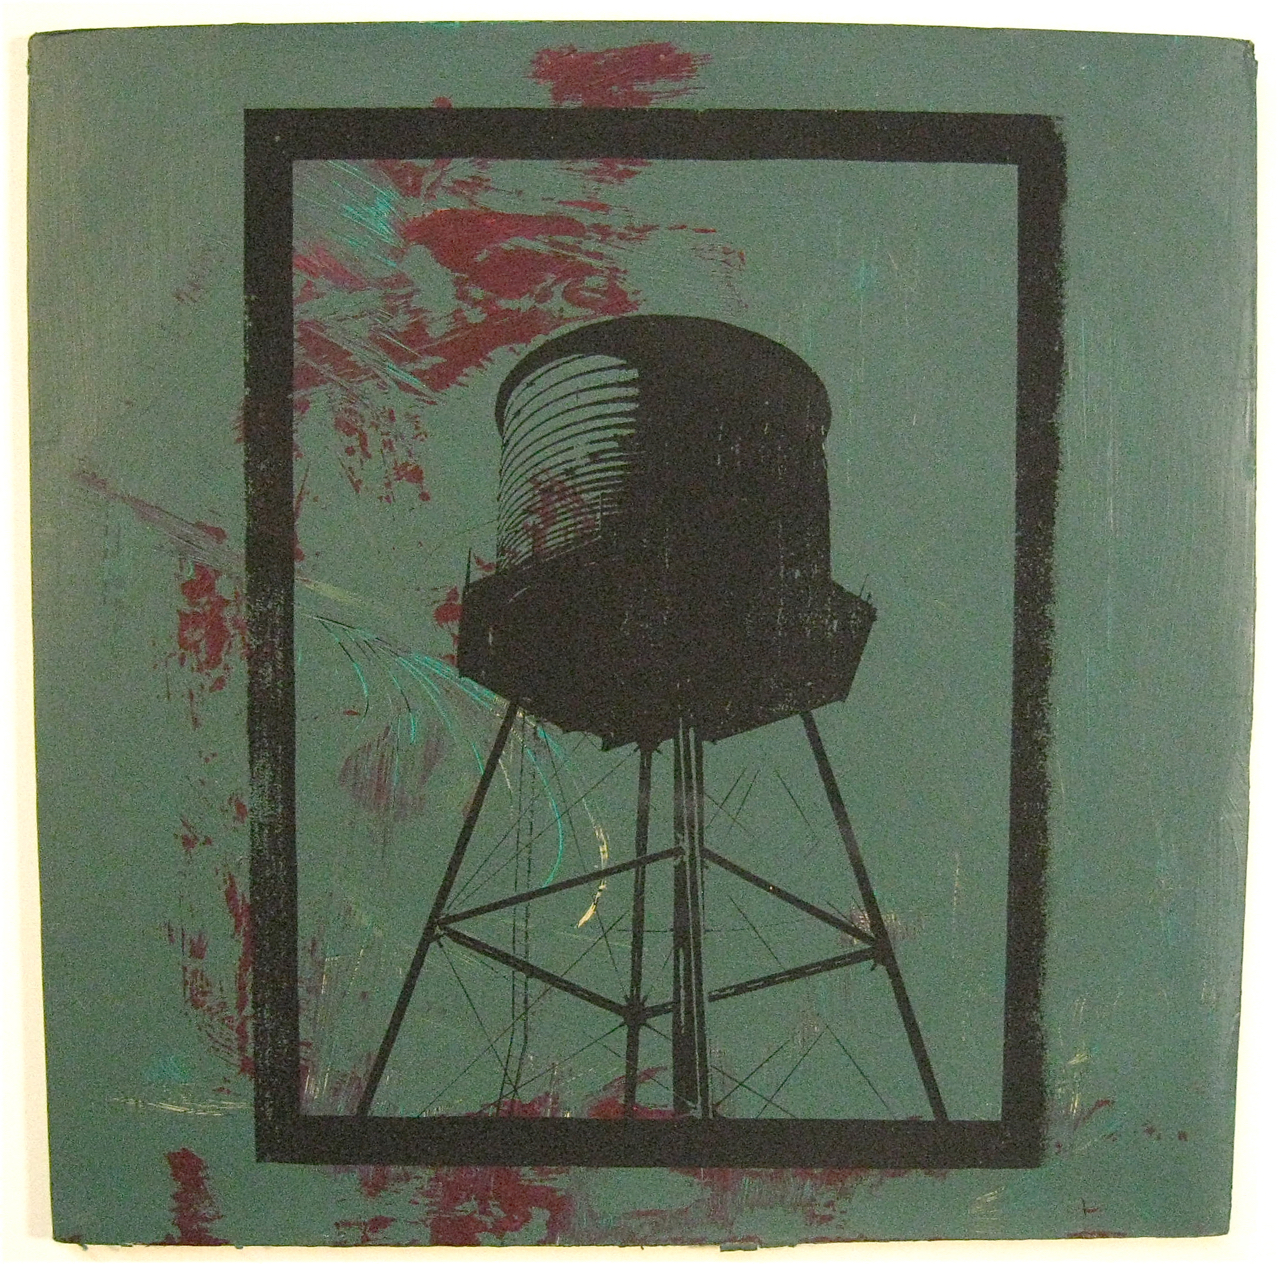 Green with Red, screen print on record album, 12x12, 2009, SOLD